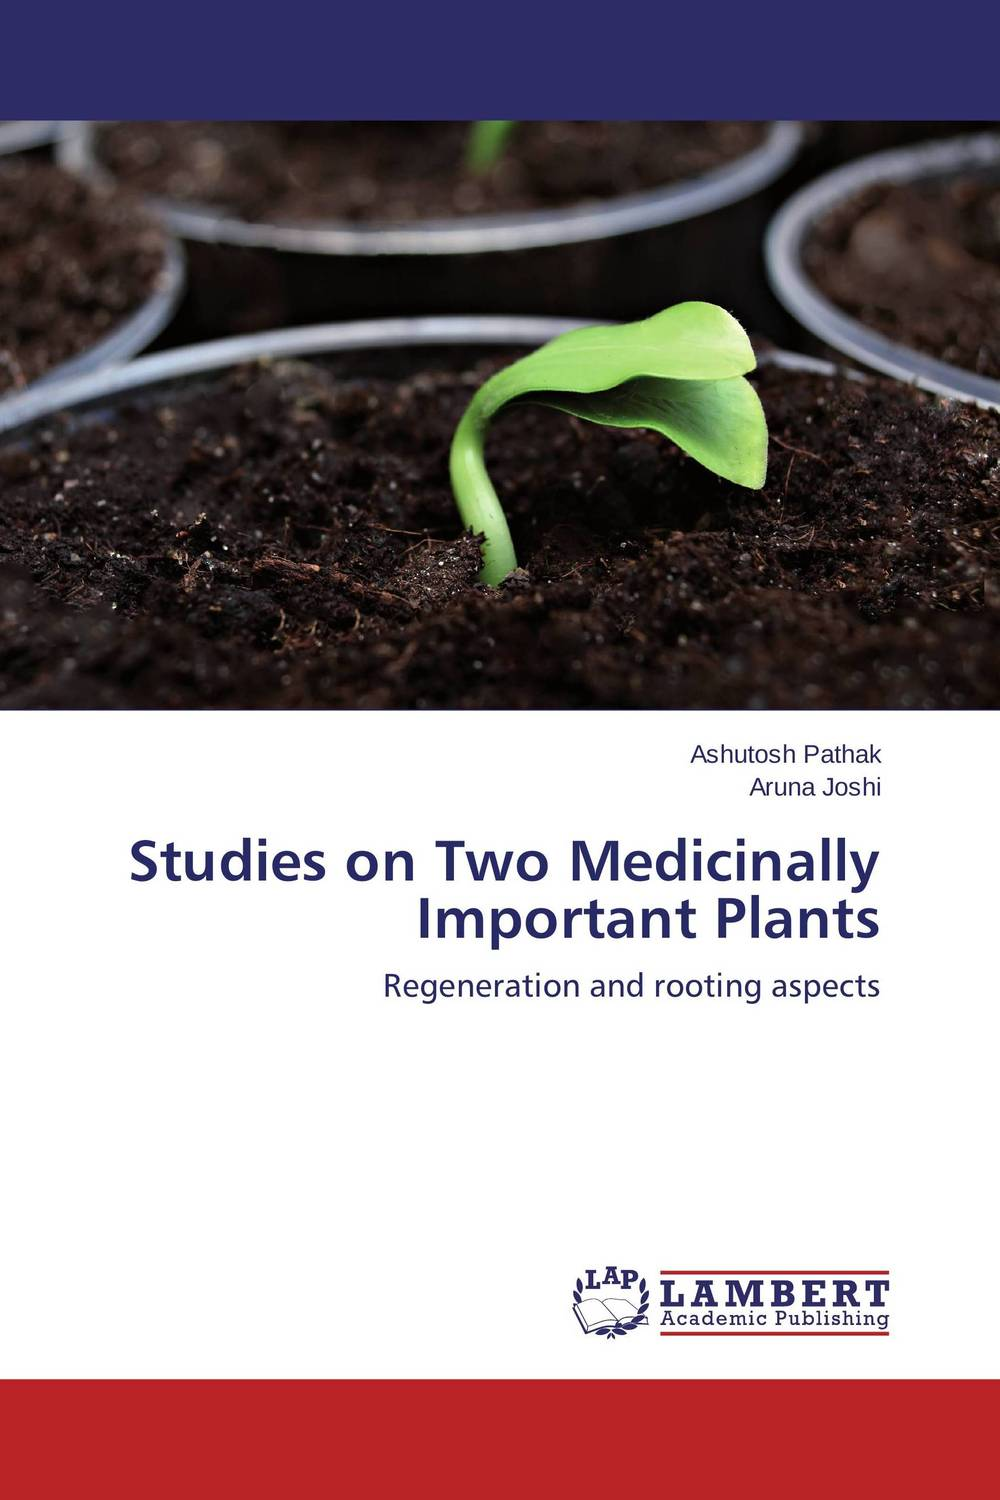 Studies on Two Medicinally Important Plants studies on two medicinally important plants